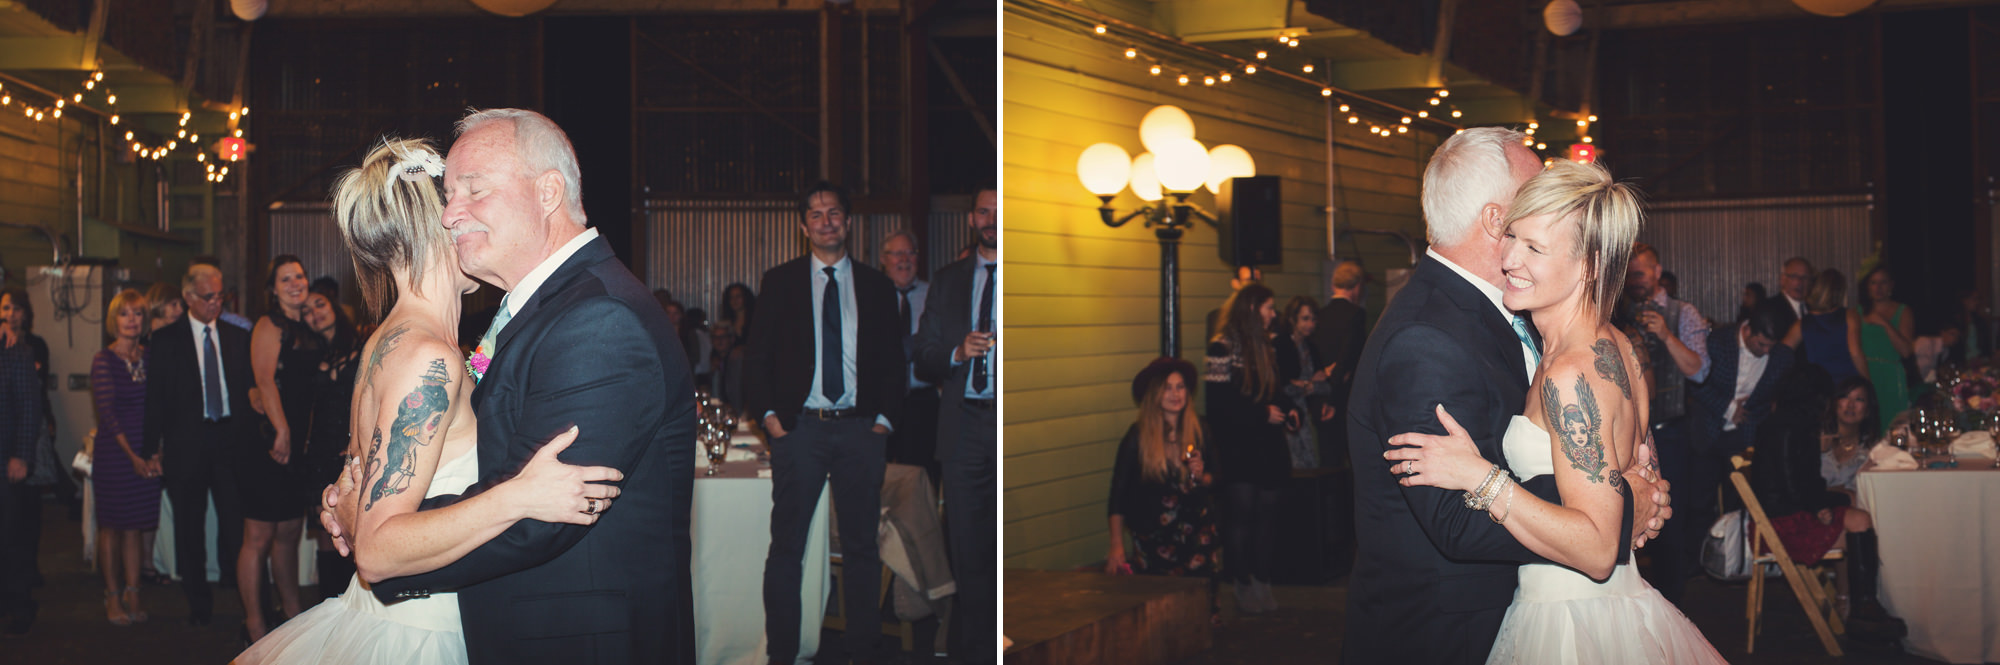 Toby's Feed Barn Wedding ©Anne-Claire Brun 143